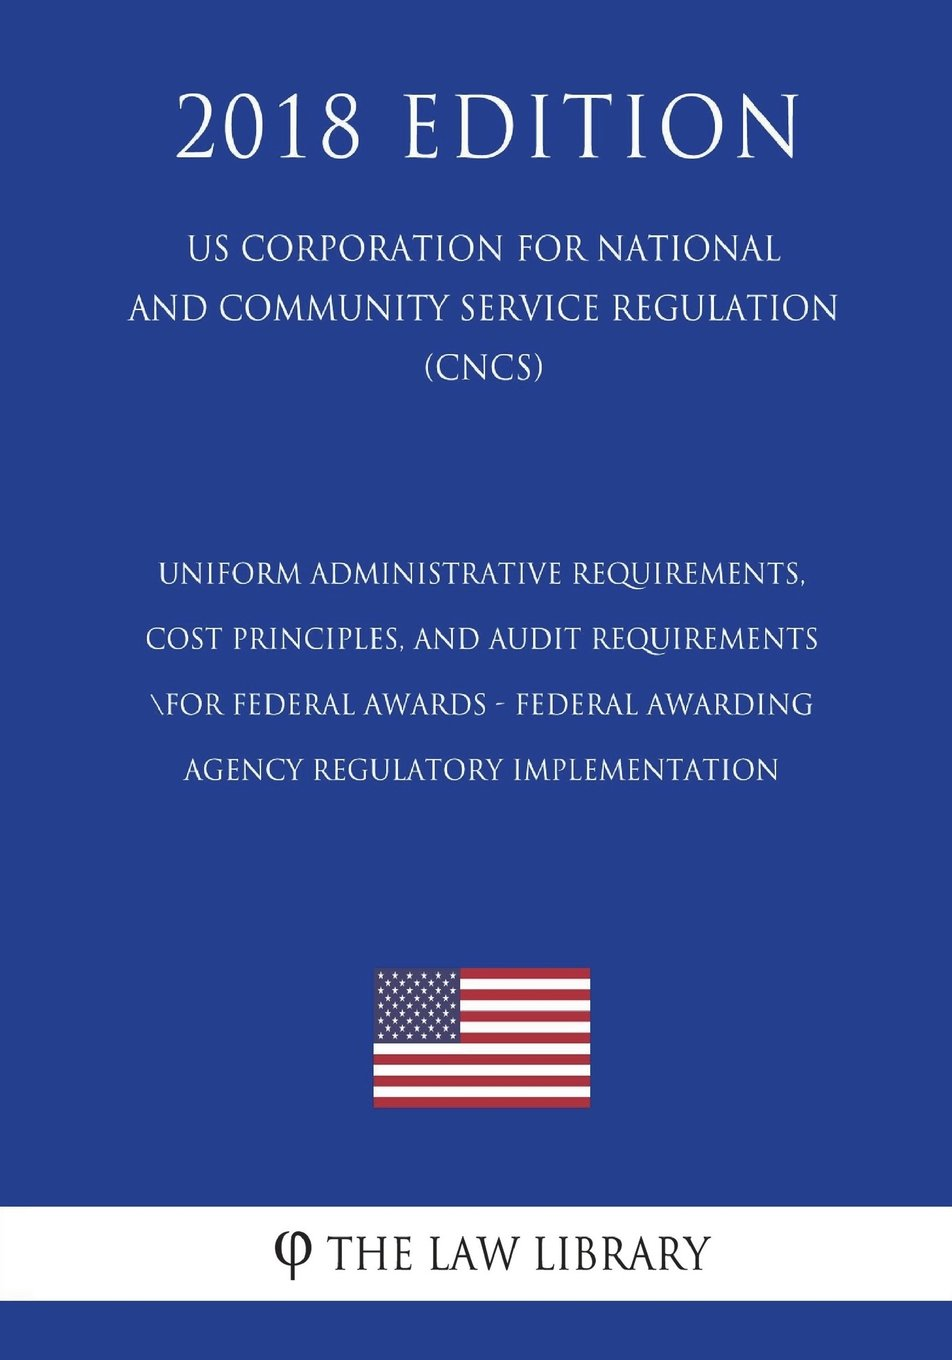 Read Online Uniform Administrative Requirements, Cost Principles, and Audit Requirements for Federal Awards - Federal Awarding Agency Regulatory Implementation ... Service Regulation) (CNCS) (2018 Edition) PDF Text fb2 ebook